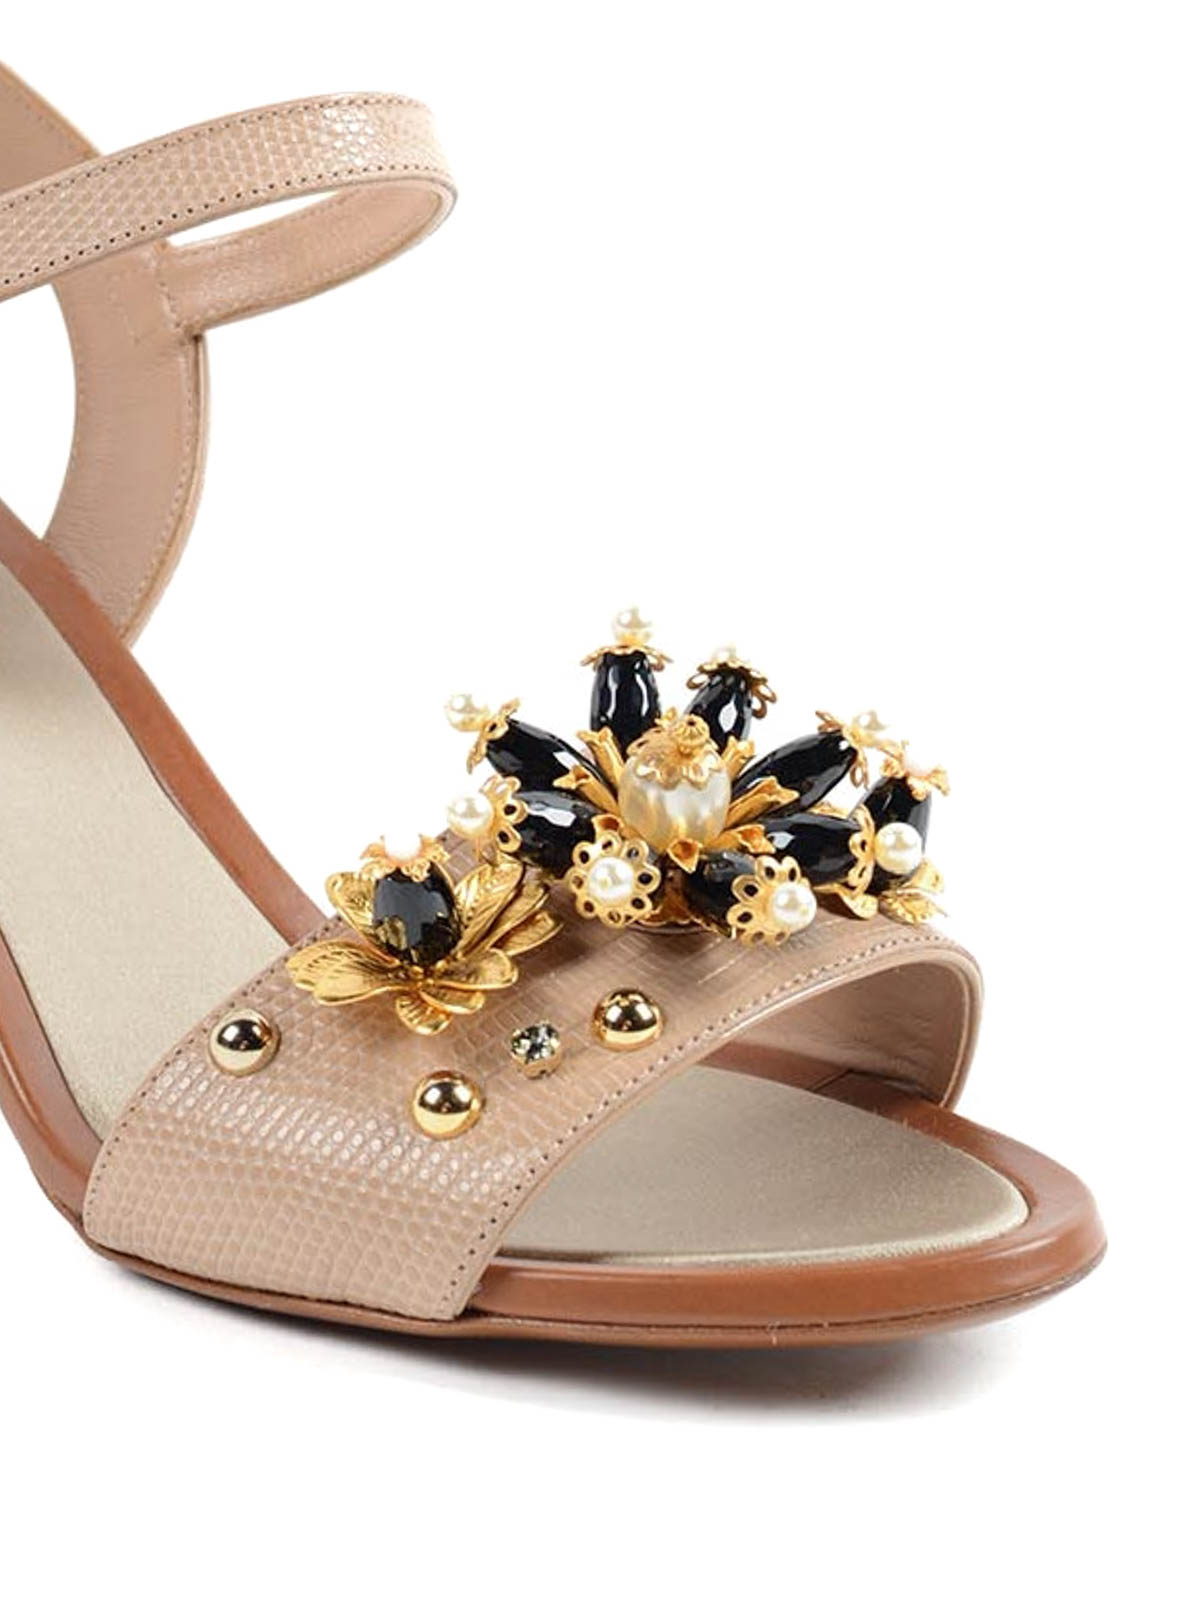 1aa672be7 iKRIX DOLCE   GABBANA  sandals - Leather sandals with rhinestones